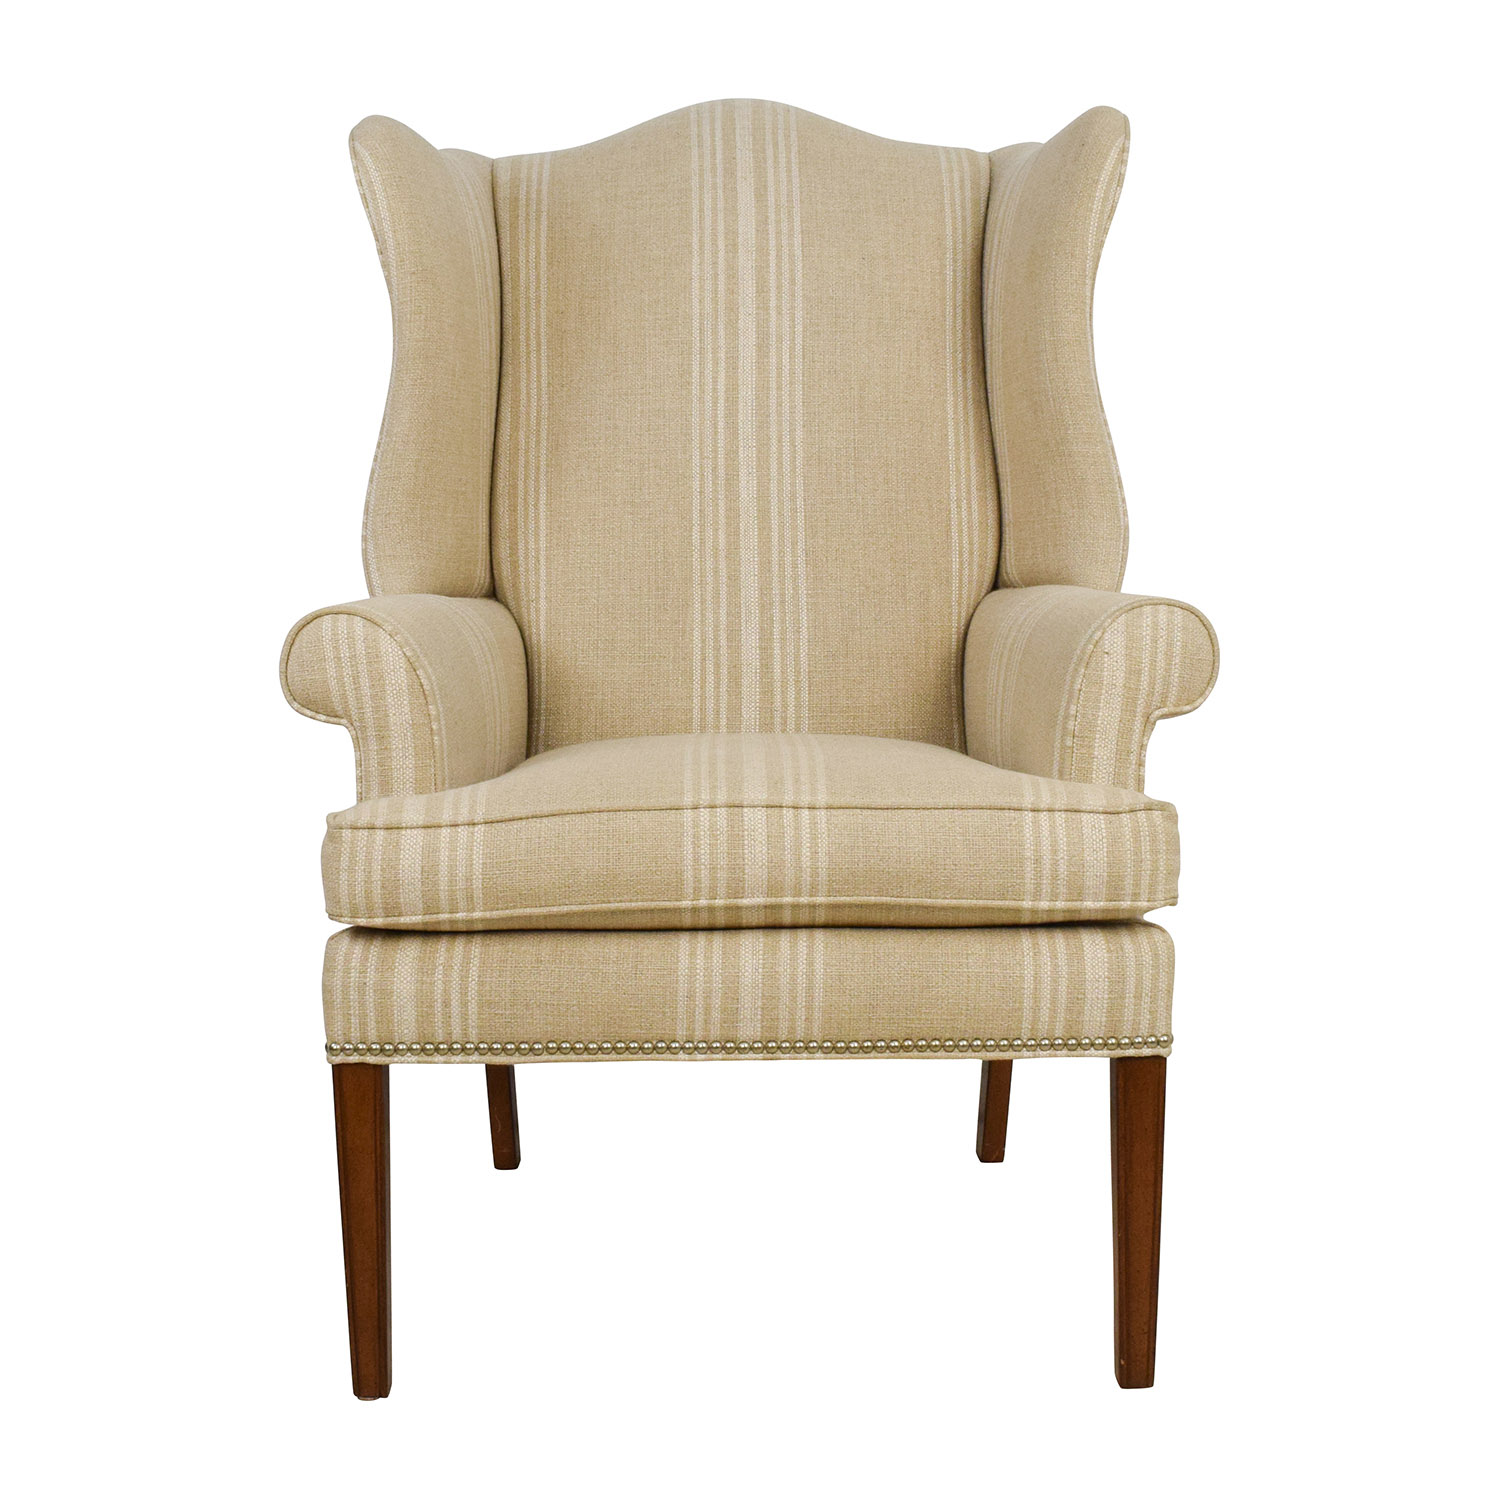 Used Wingback Chairs 88 Off Ethan Allen Ethan Allen Skylar Stripped Wing